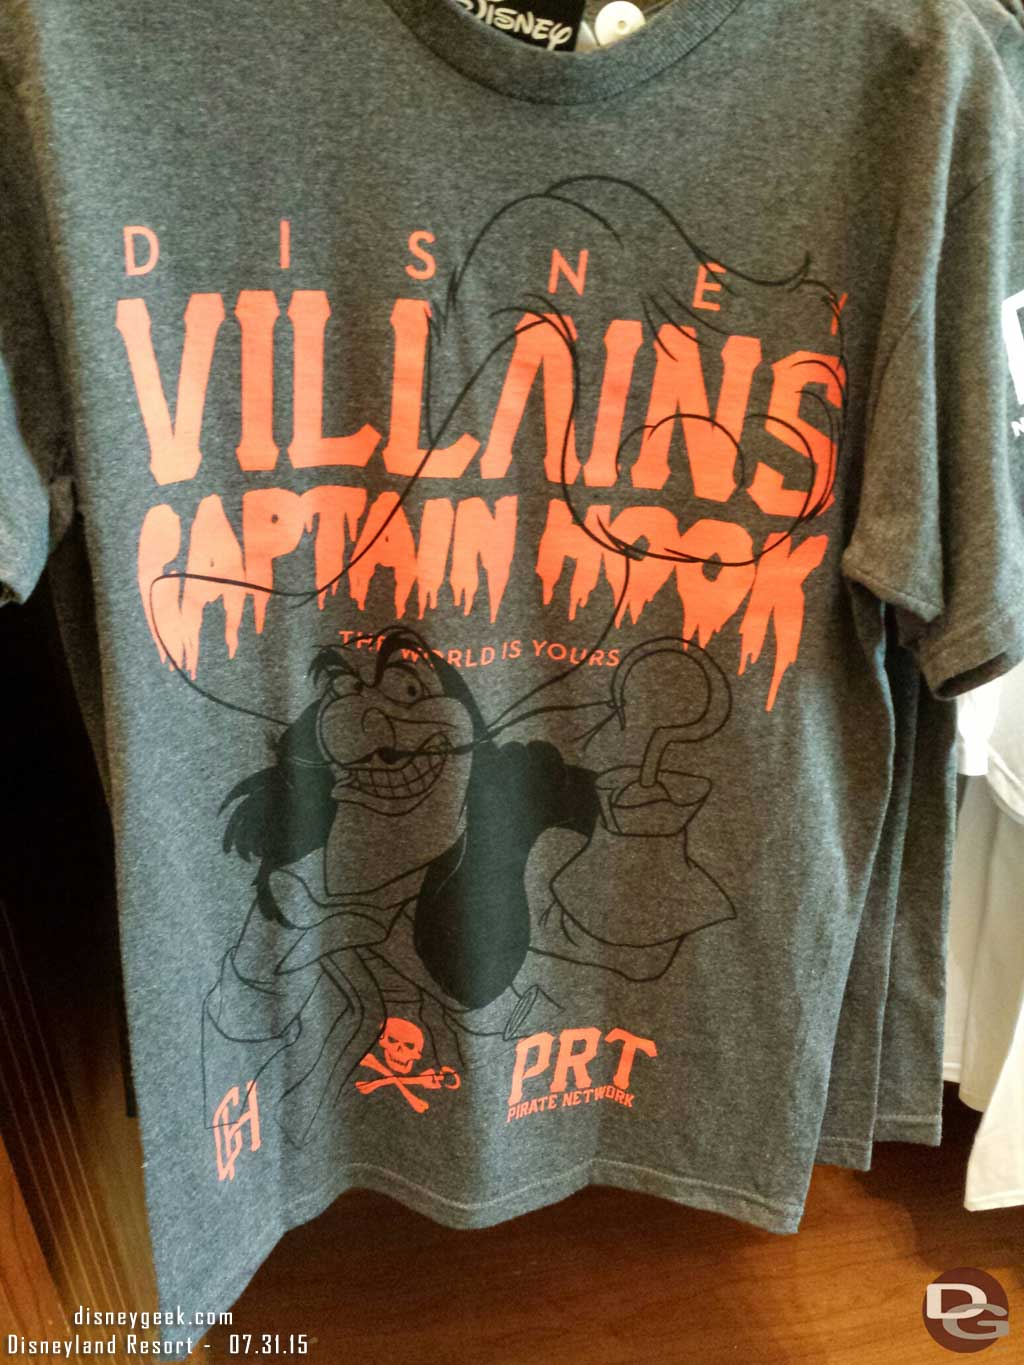 Disney Villains Captain Hook shirt #BuenaVistaStreet